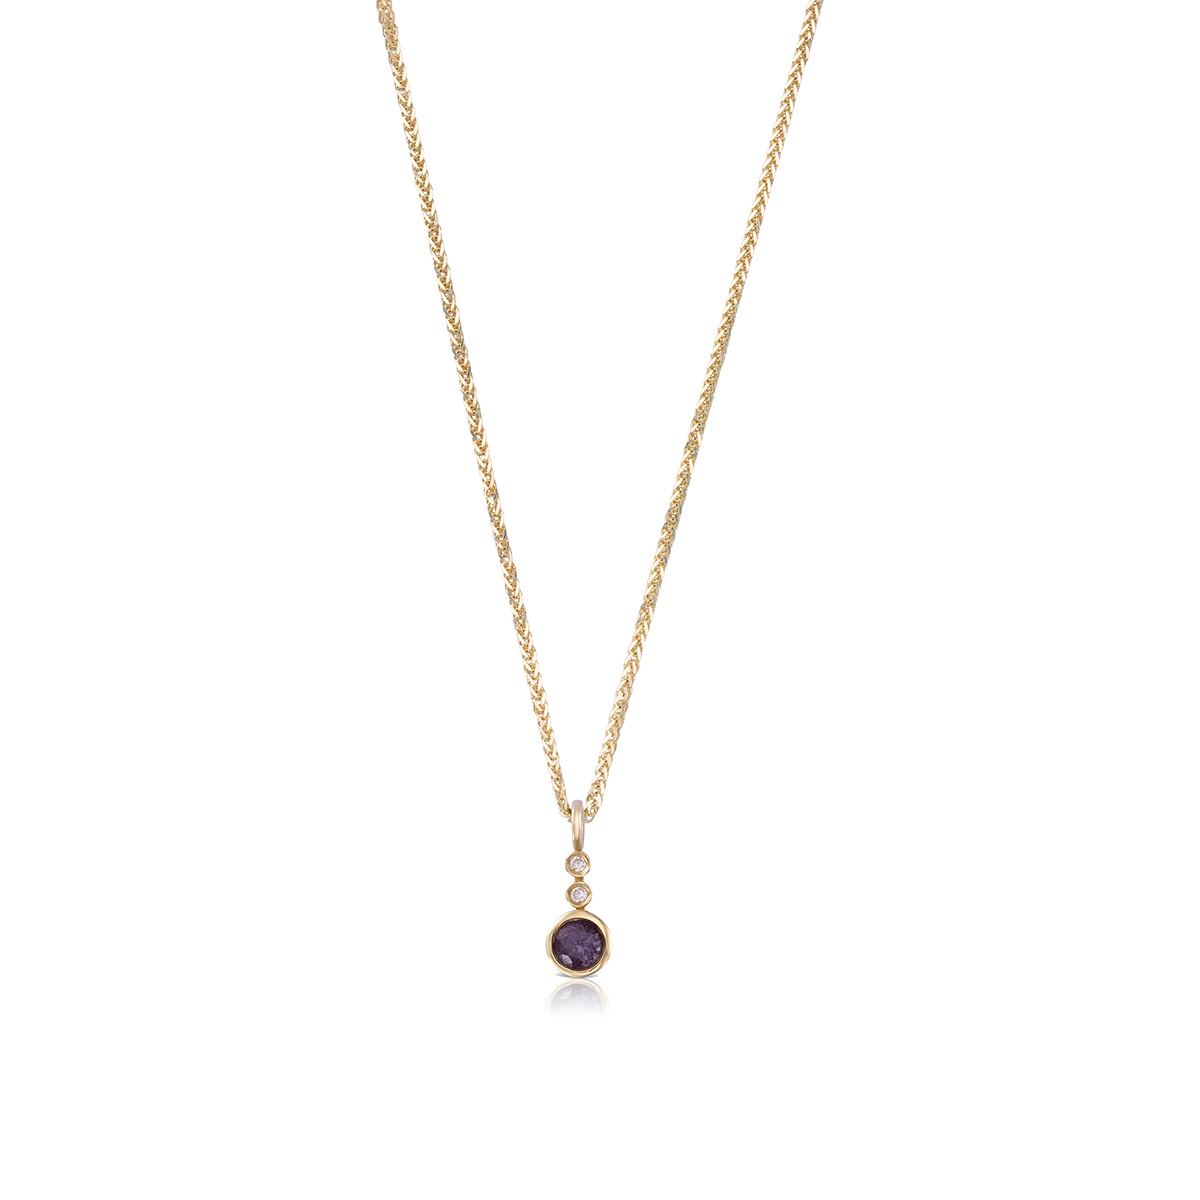 Gold Necklace With Spinel And Diamonds